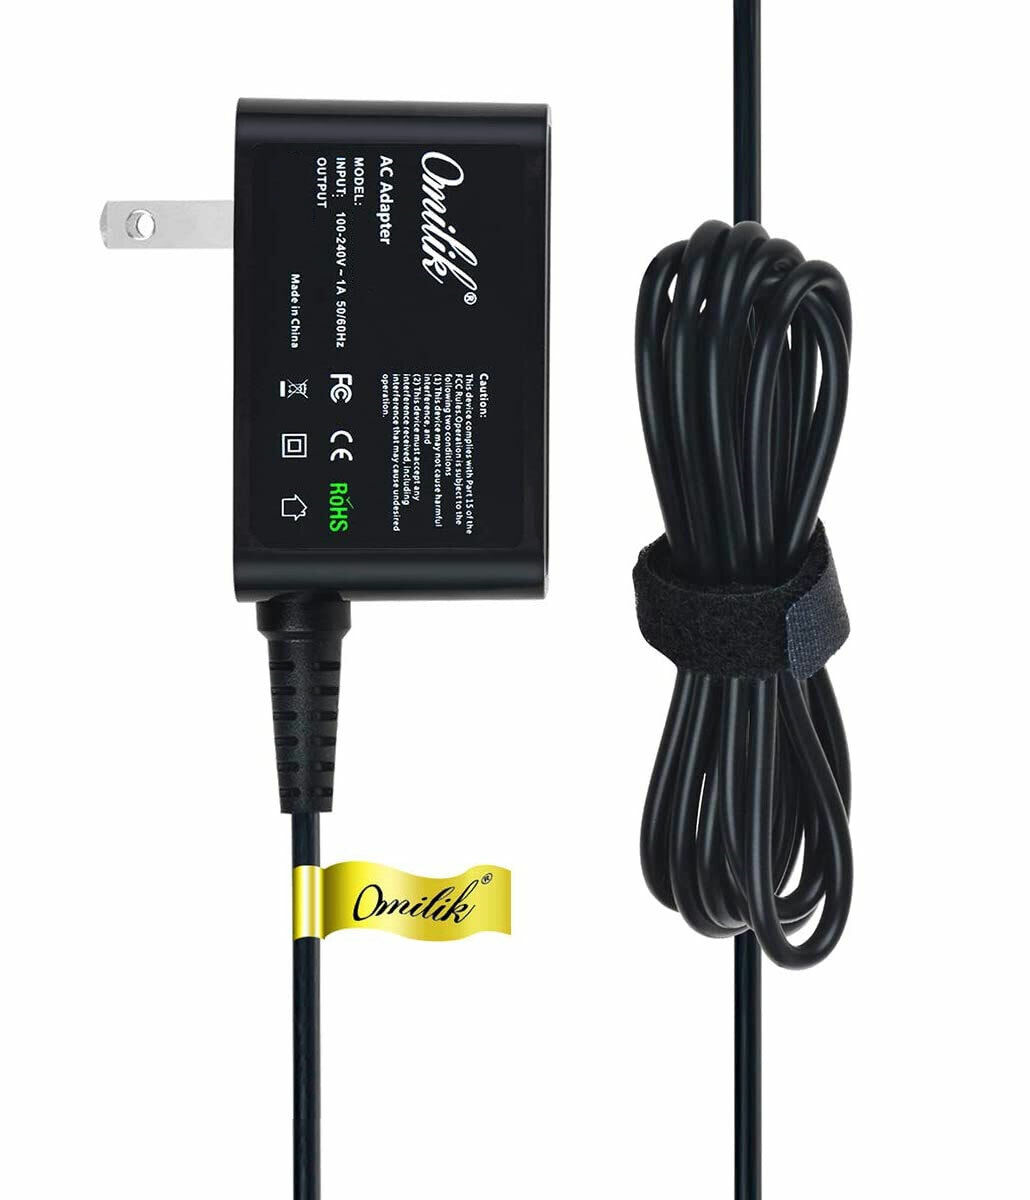 OmiLik 6V 2A AC-DC Adapter Charger for BodyFit Recumbent Upright Bike Body Power